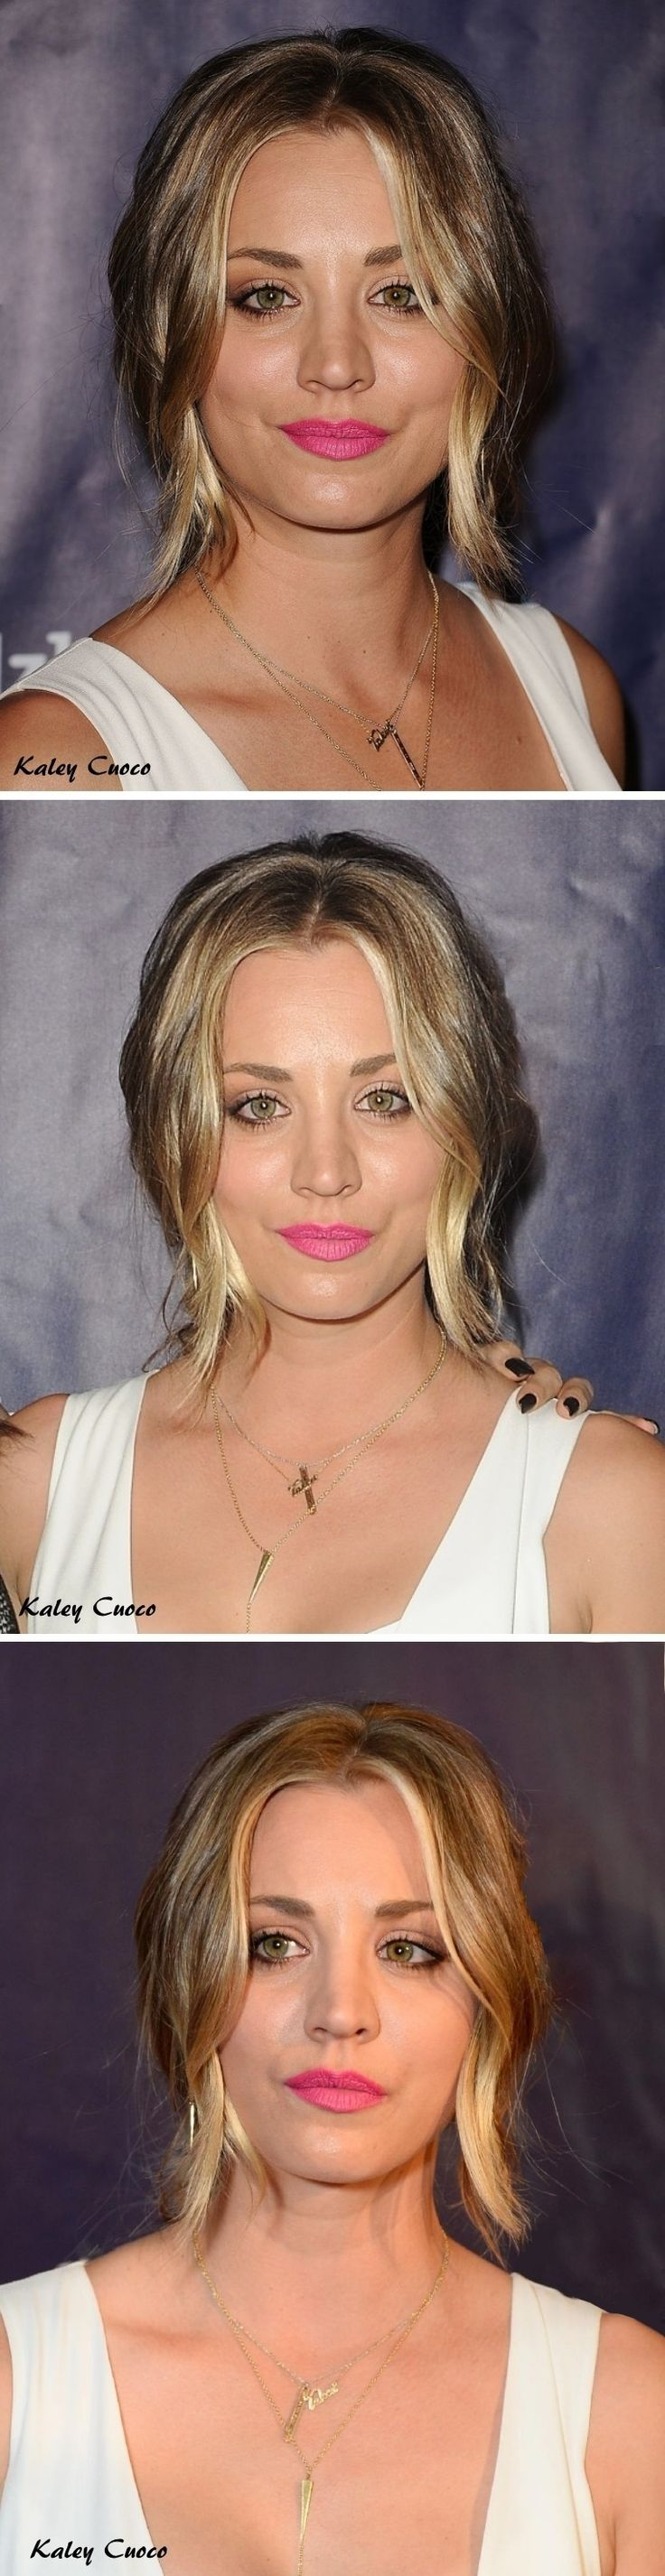 77 Best Kaley Cuoco Images On Pinterest  Kaley Cuoco -5800